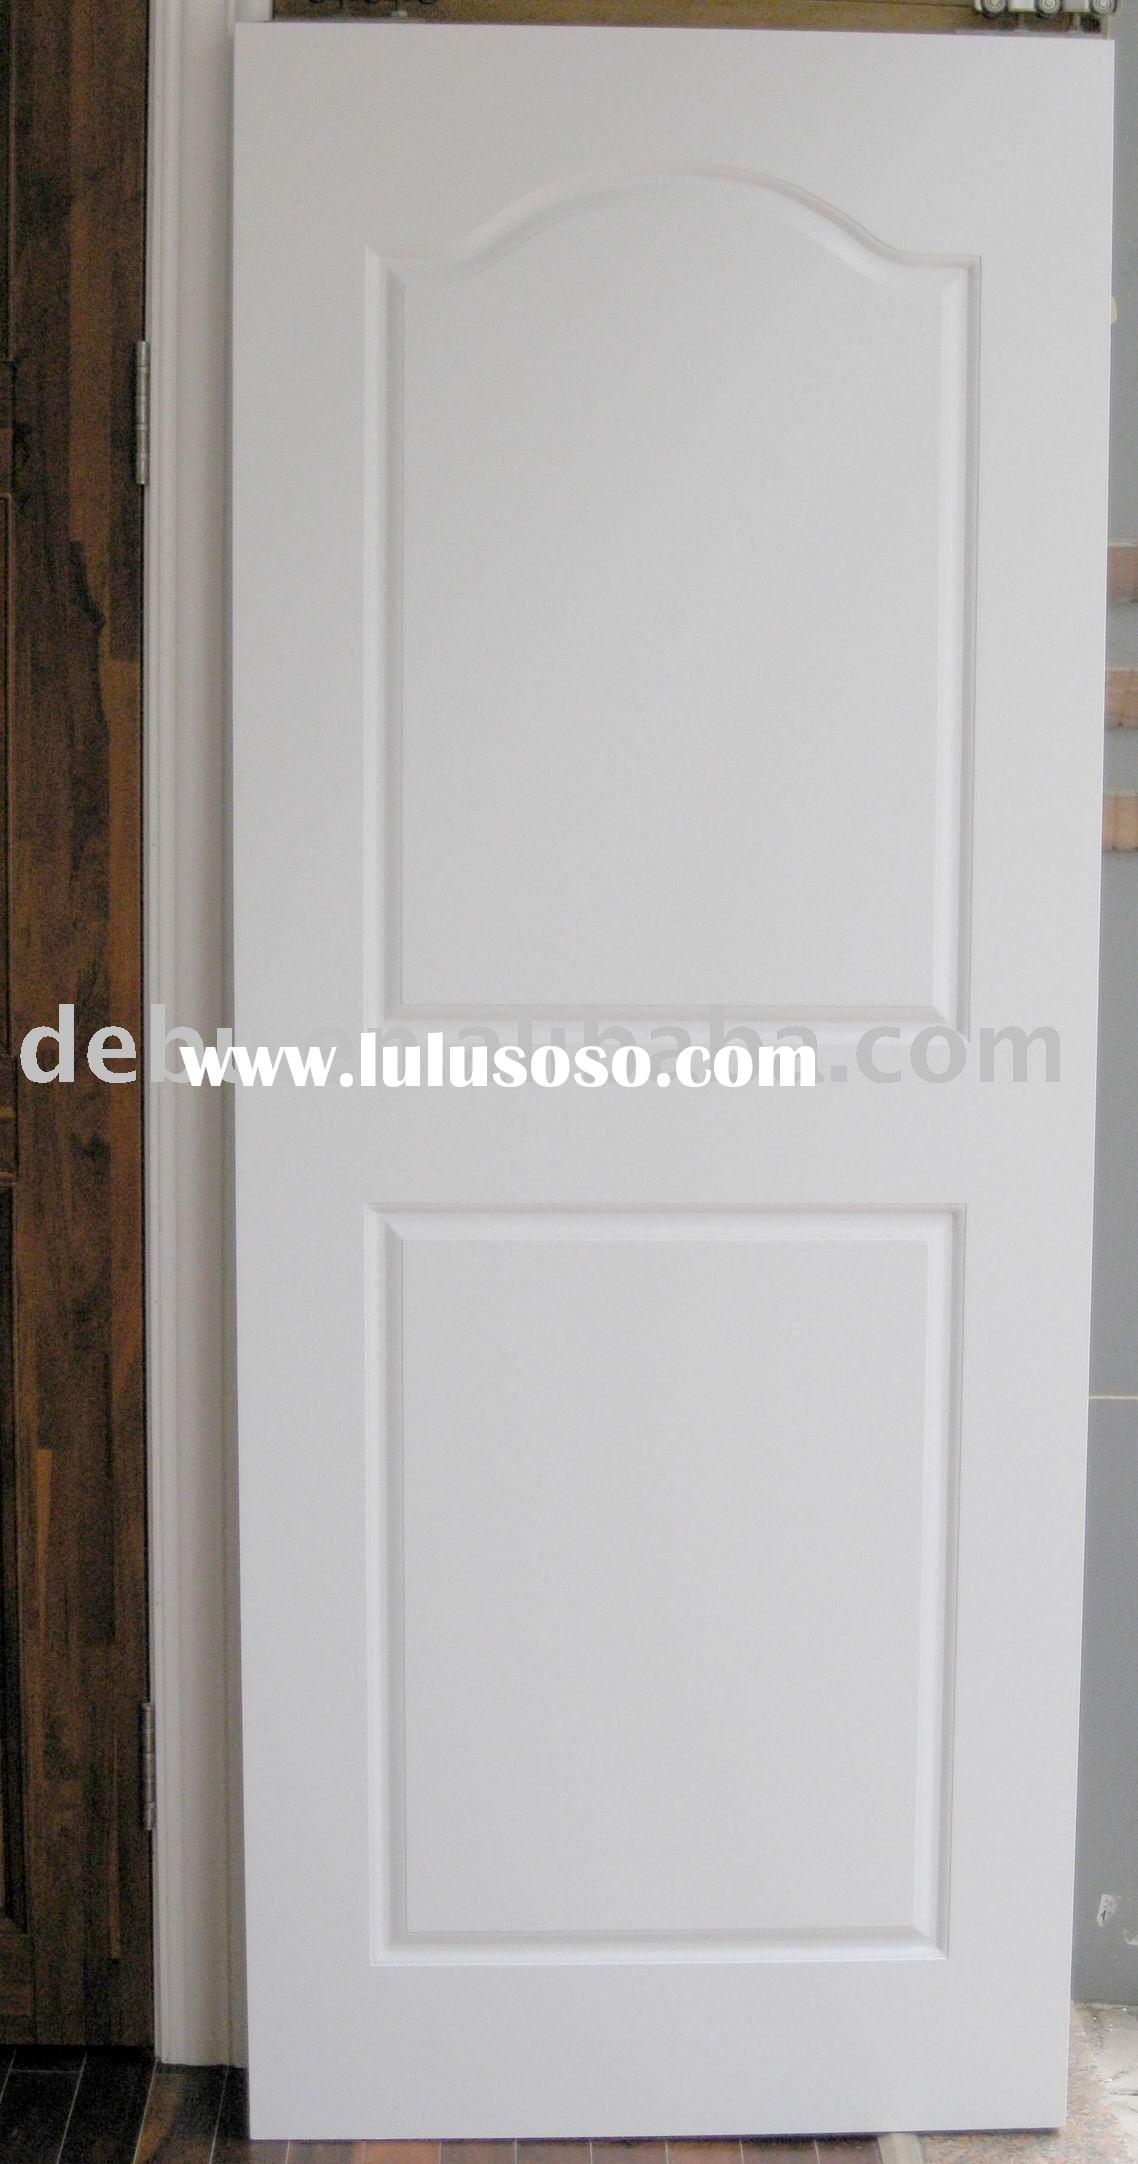 Http Www Lulusoso Com Products Interior Door White Html